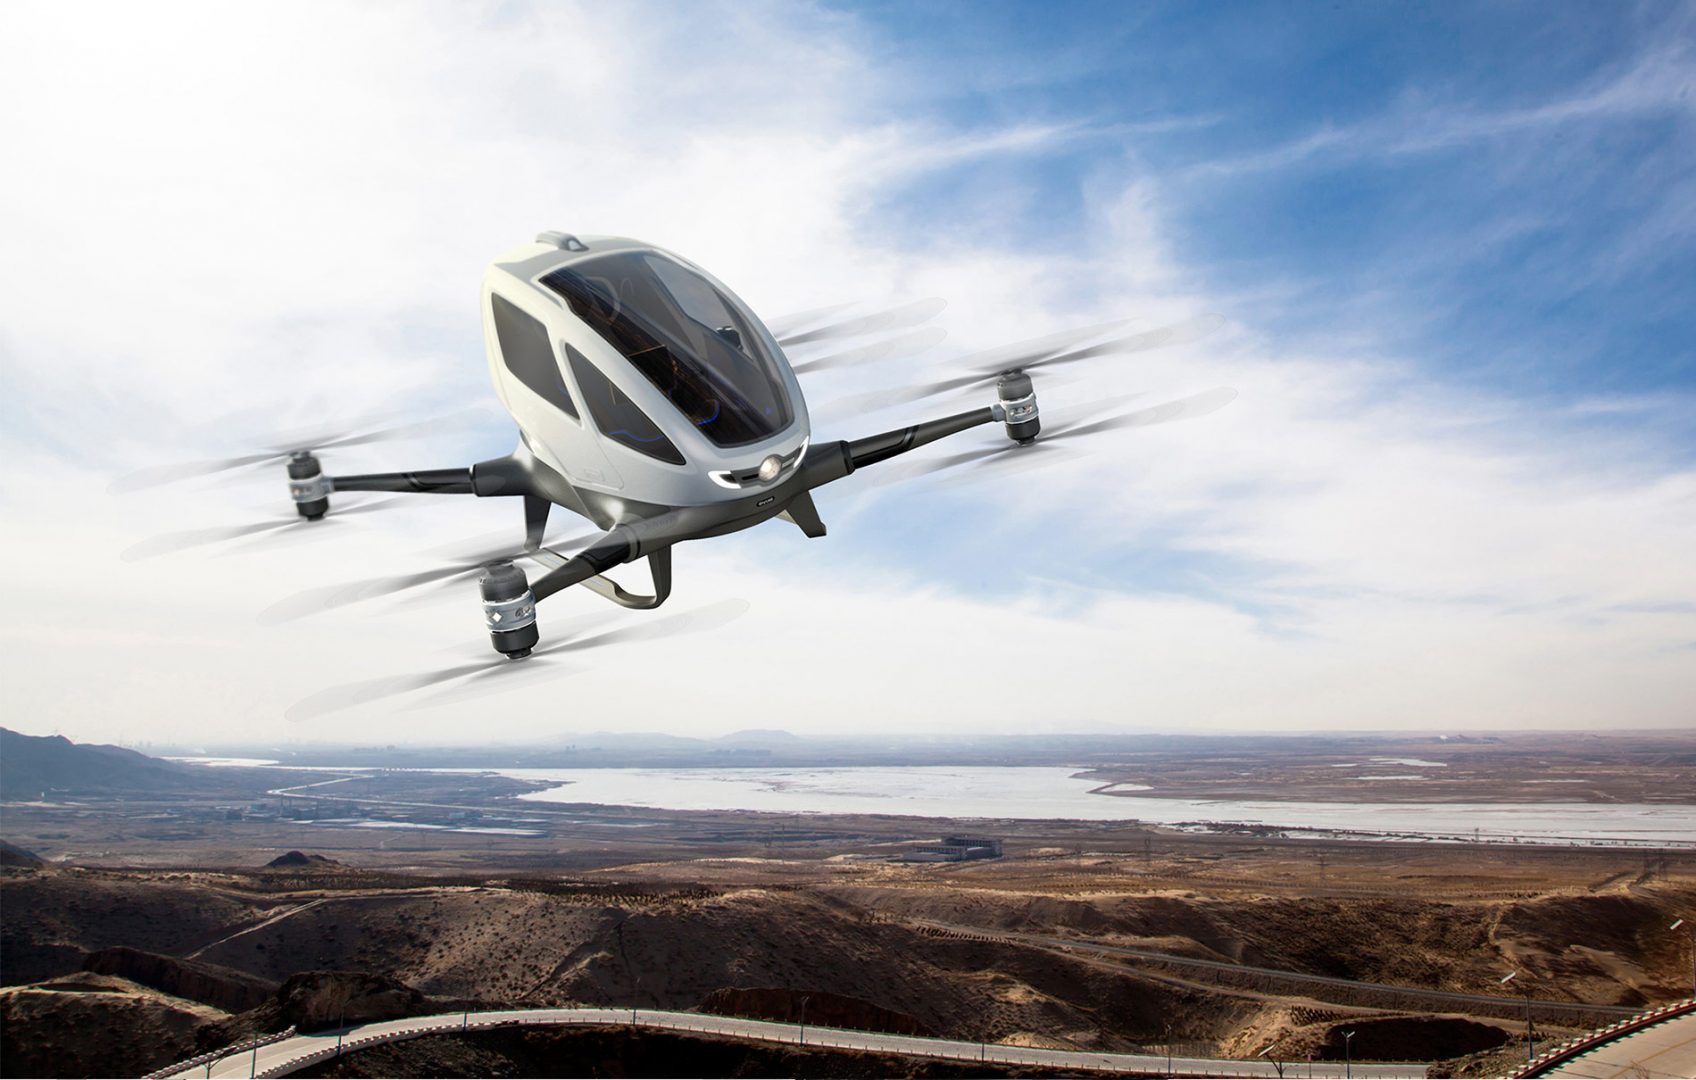 ehang-184-world-first-passenger-drone-gessato-7